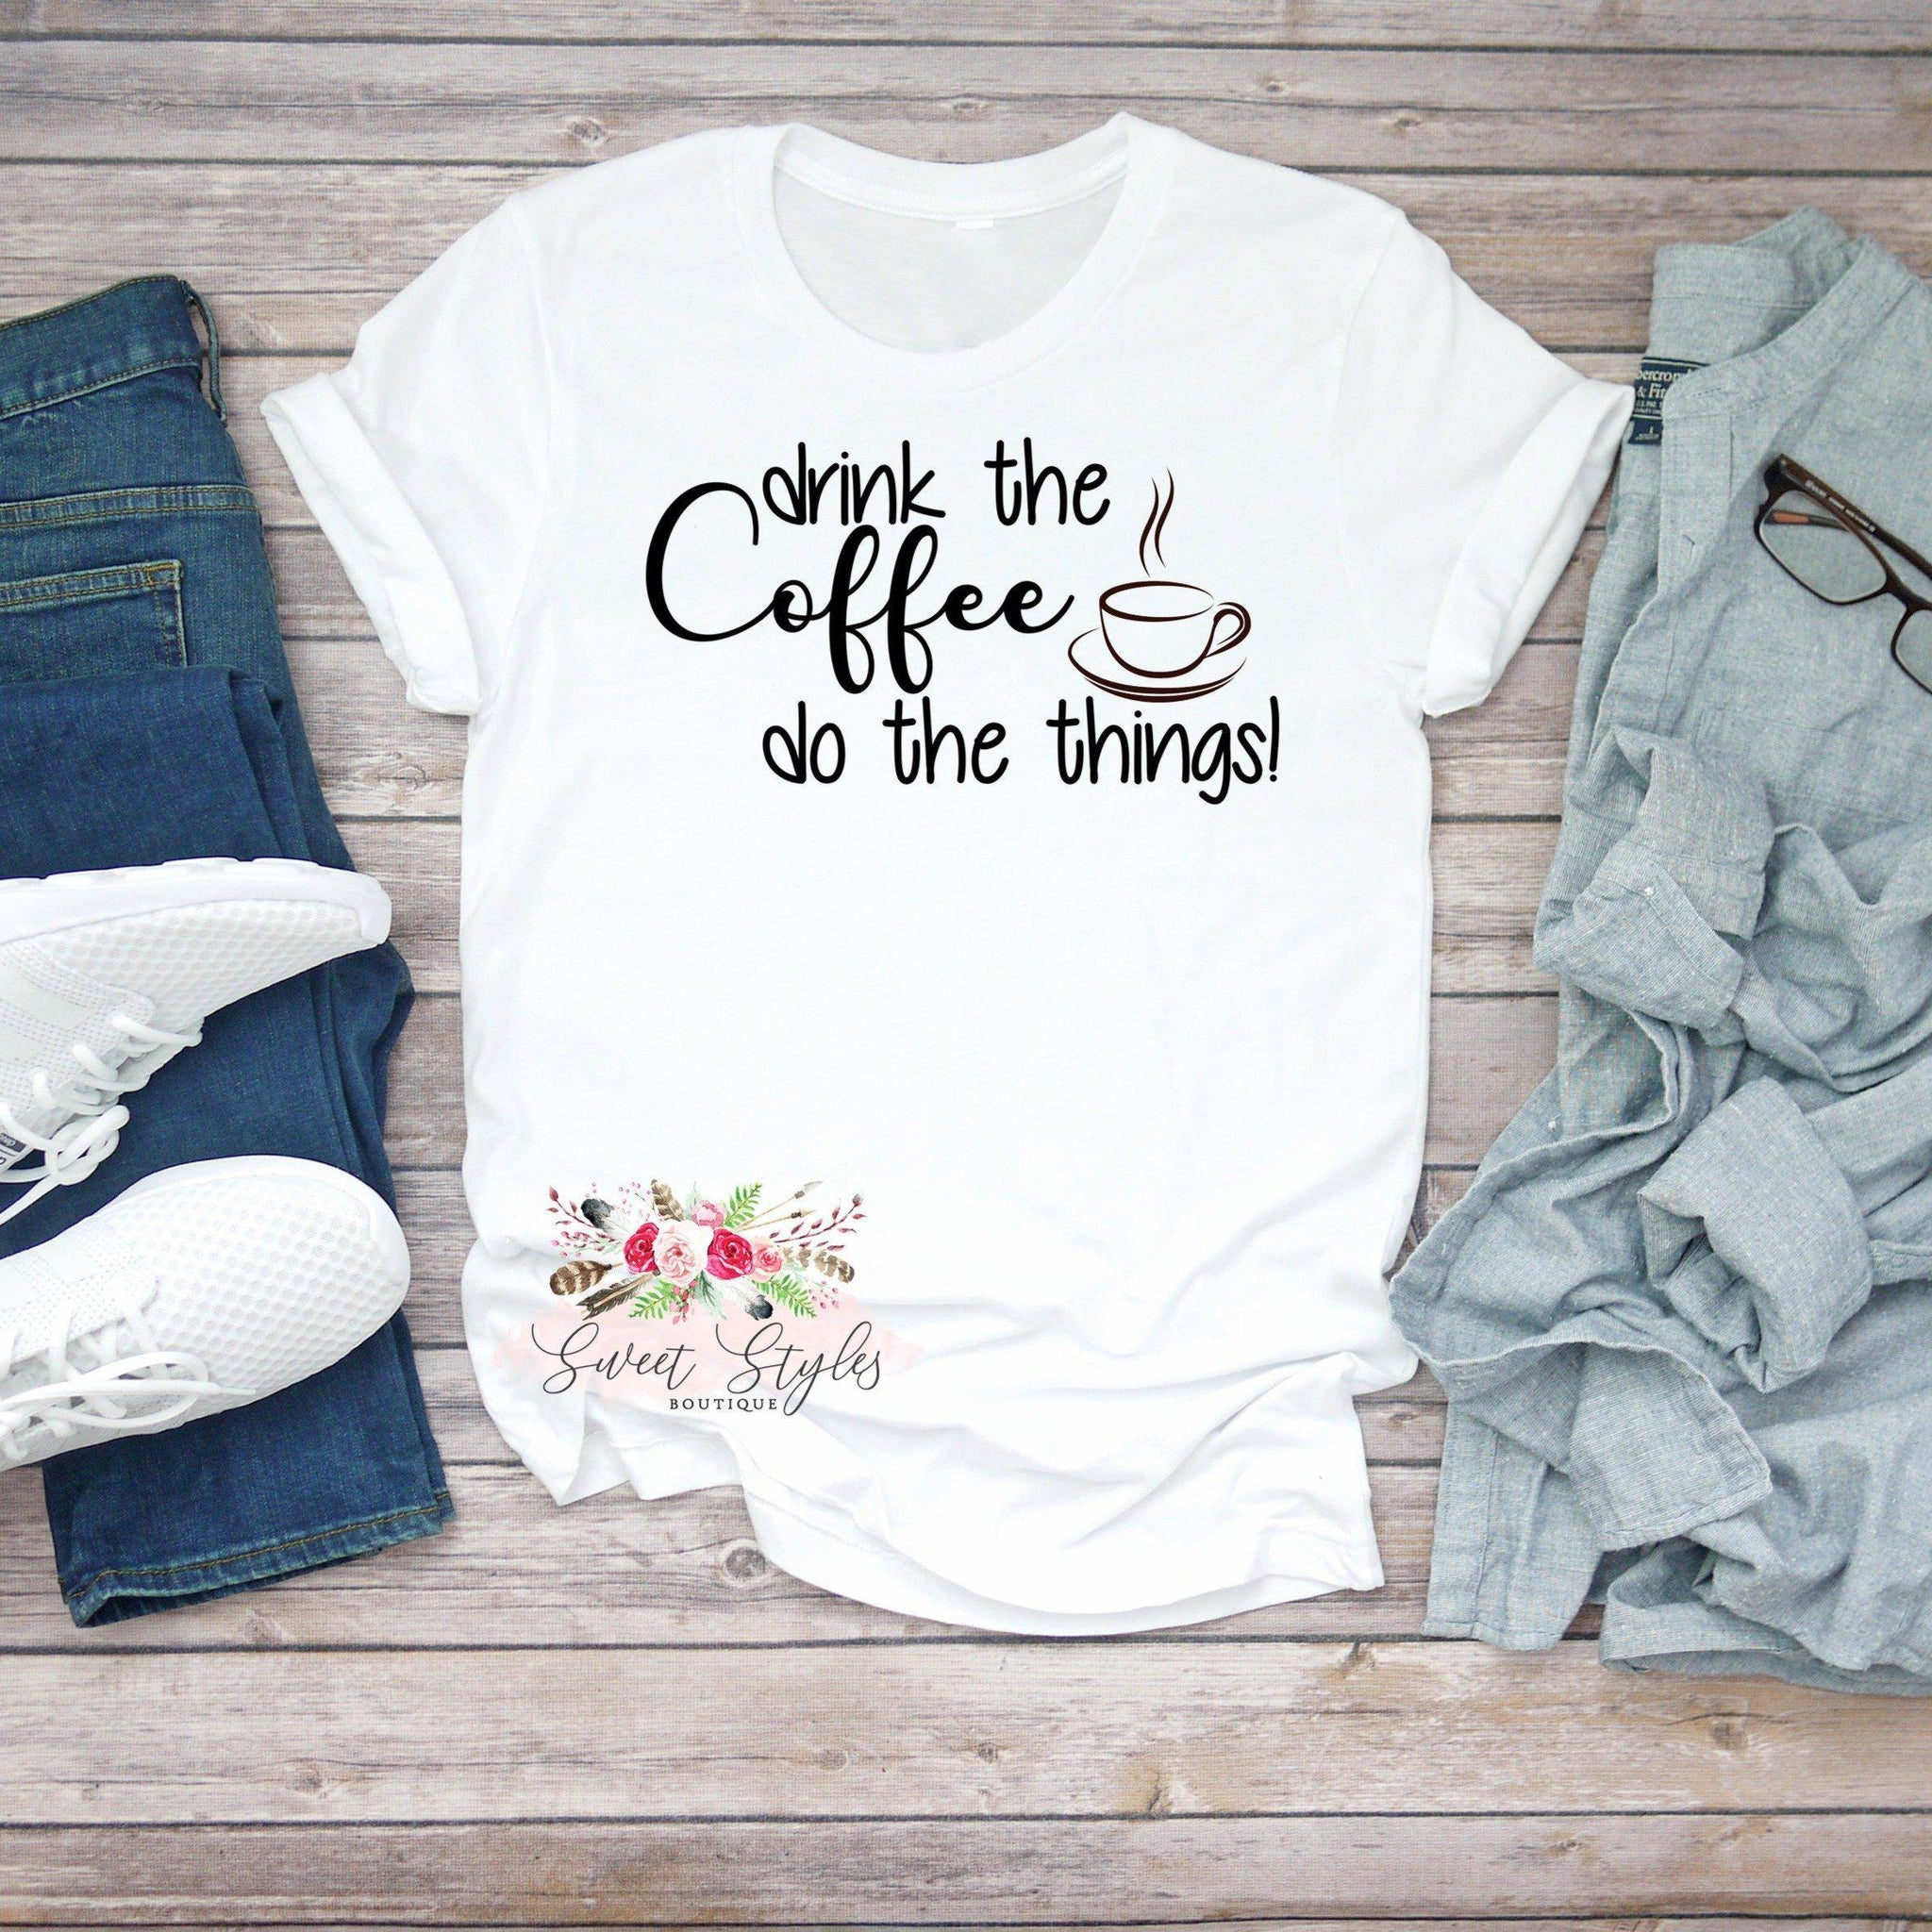 Drink the coffee do the things T-shirt-Sweet Styles boutique